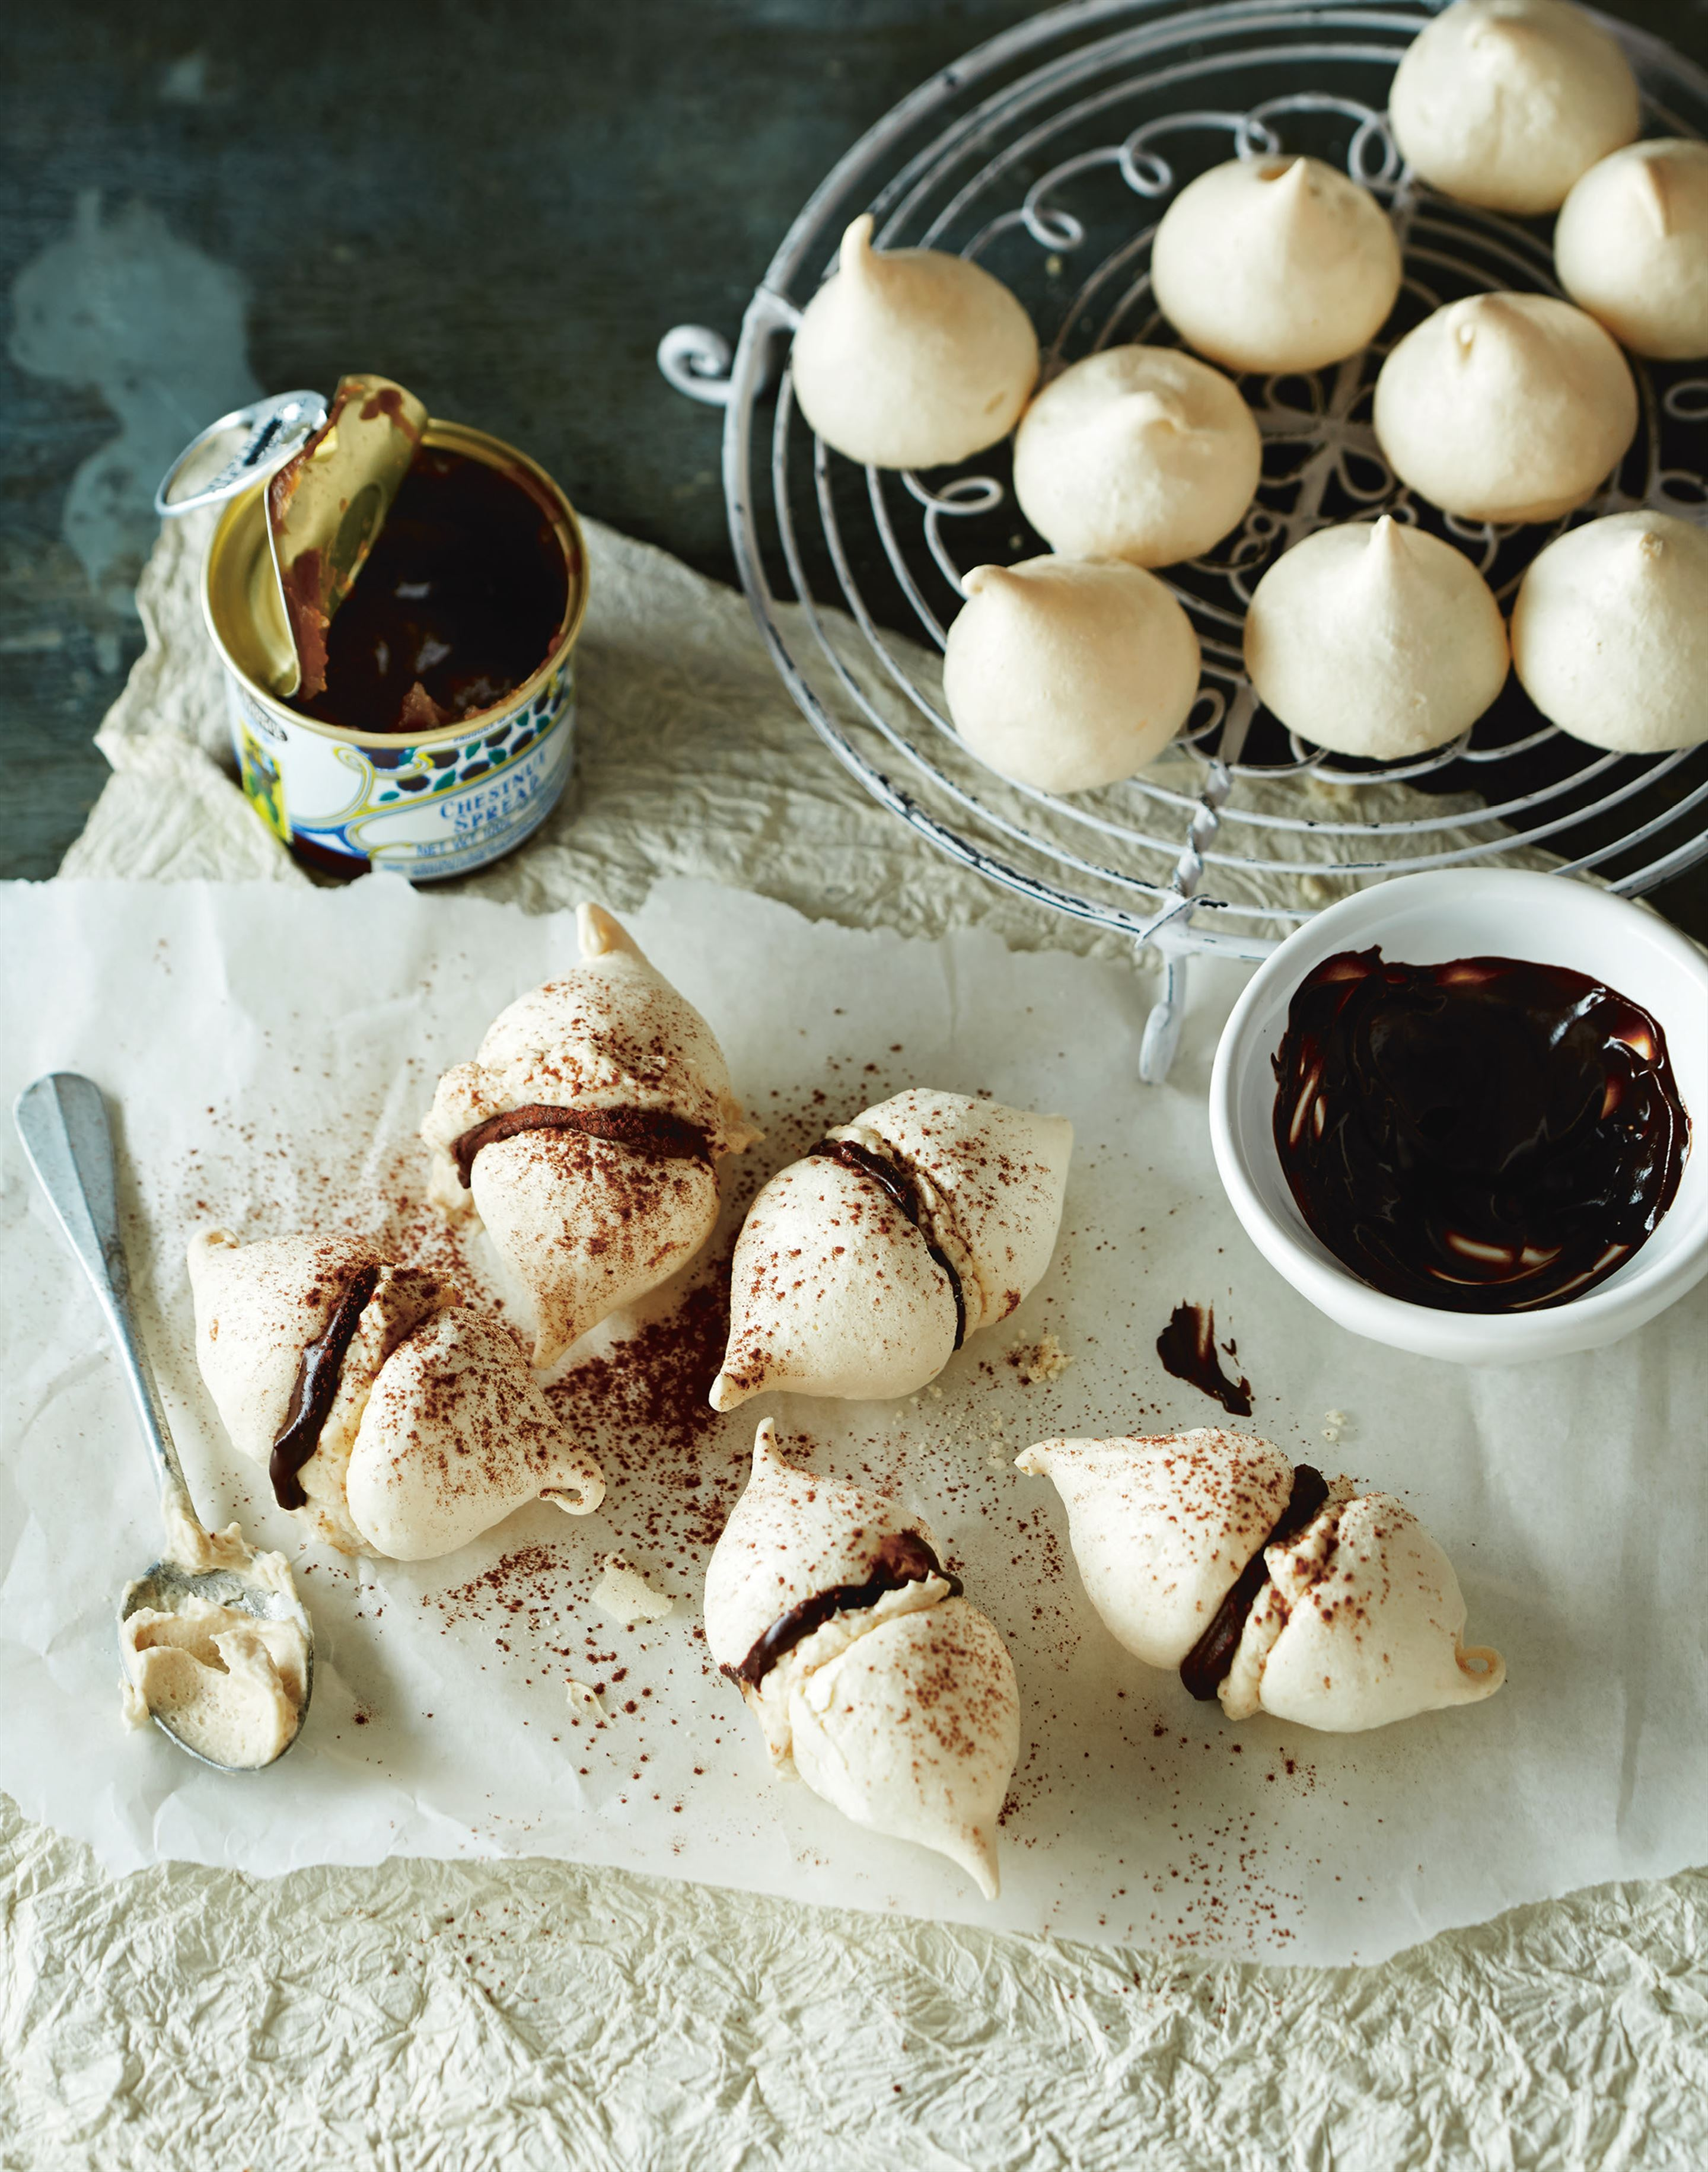 Chocolate and chestnut meringues